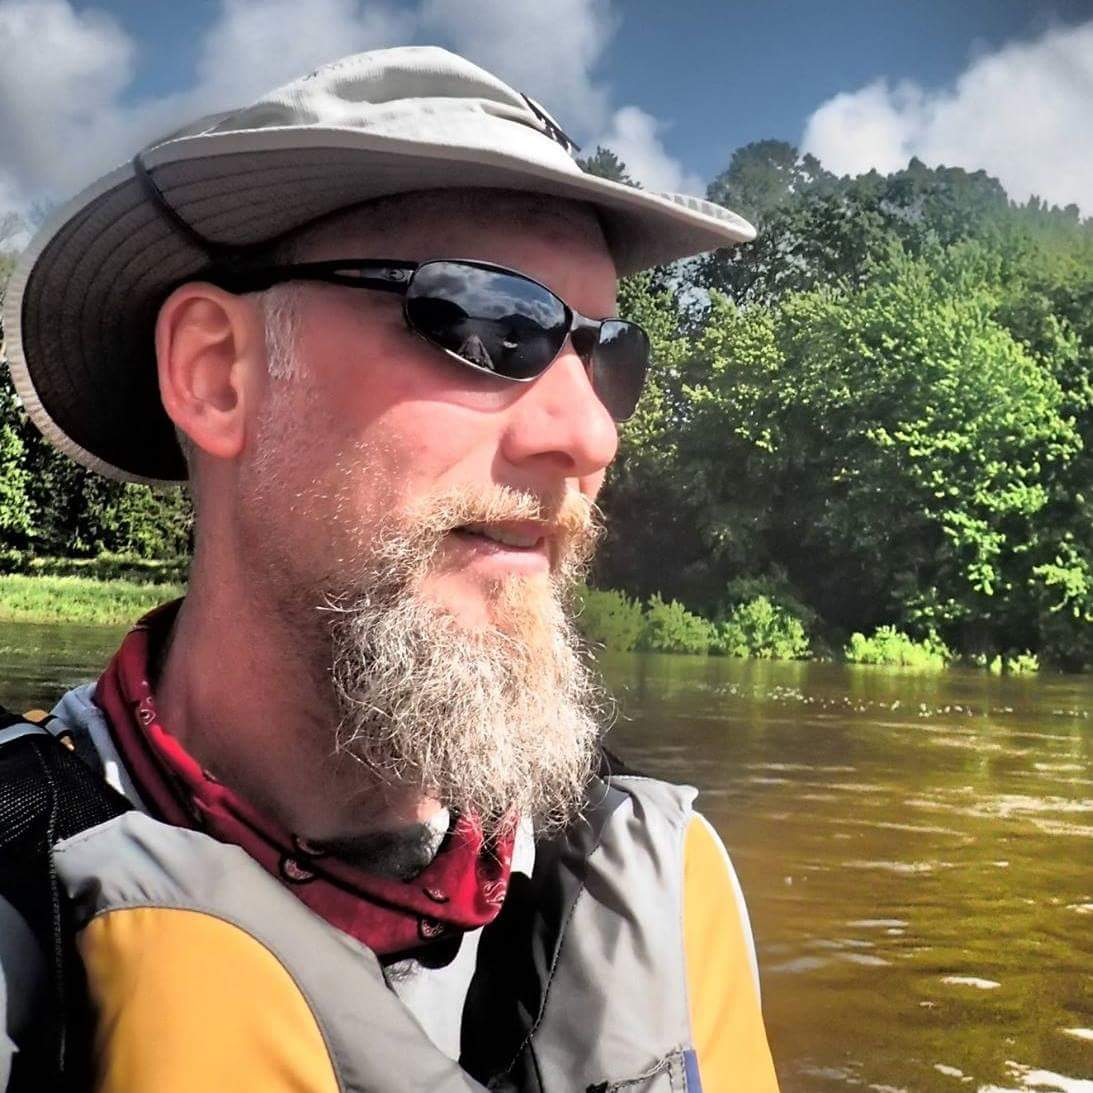 Dana Rockwell, 47, spent two weeks paddling all 444 miles of the Susquehanna River with a friend in the late spring of 2017. He said the beauty and adventure of the trip helped change his relationship to the river he grew up along.